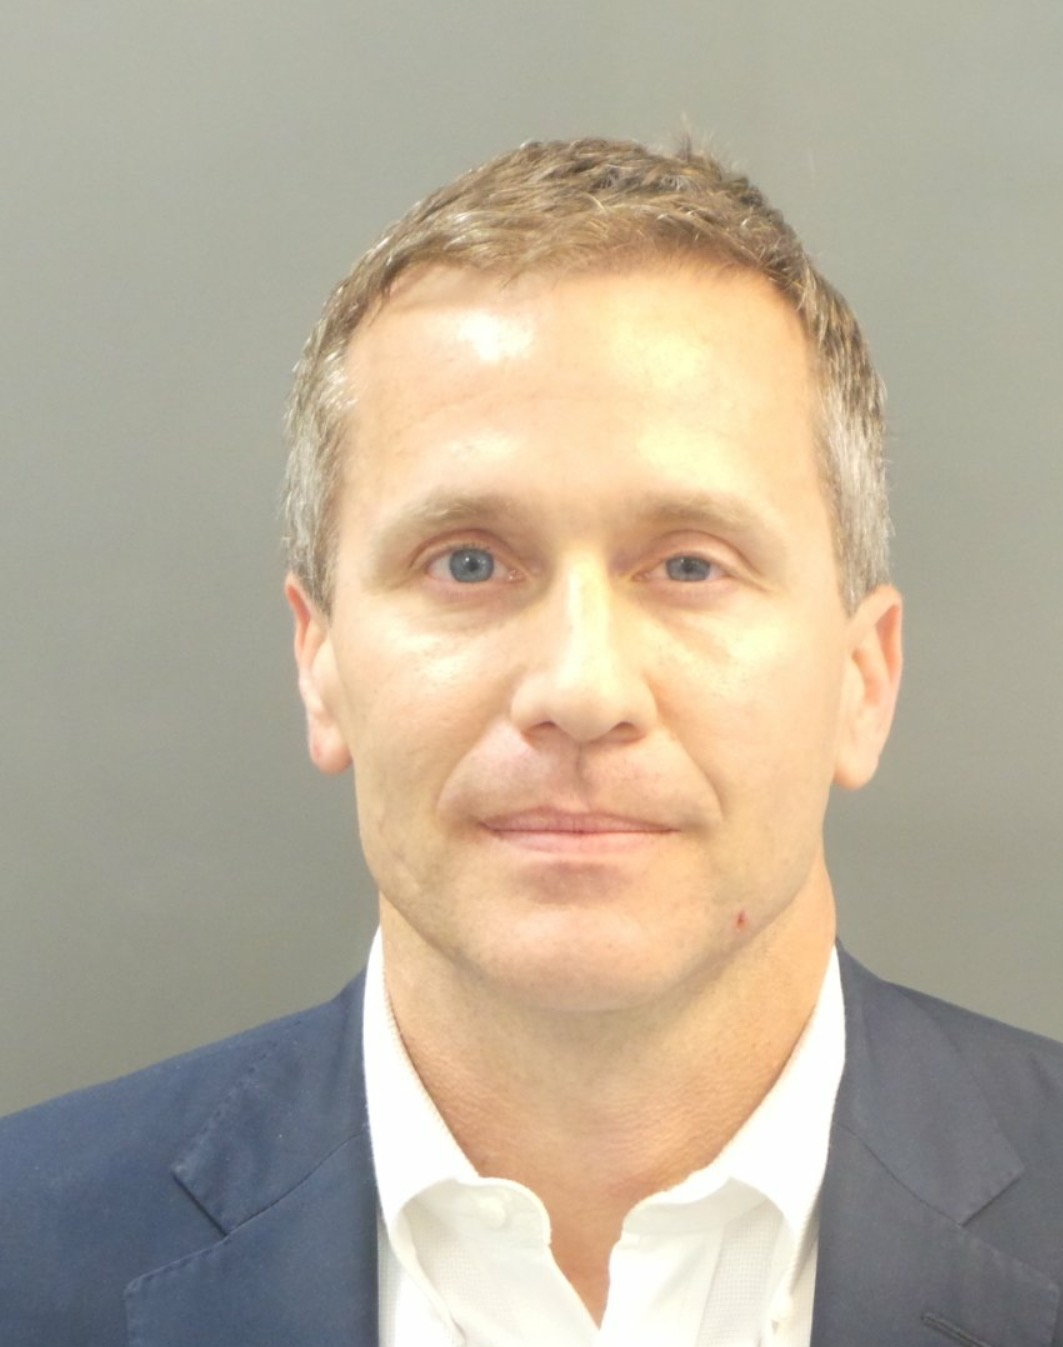 Report from special House committee investigating Greitens expected Wednesday